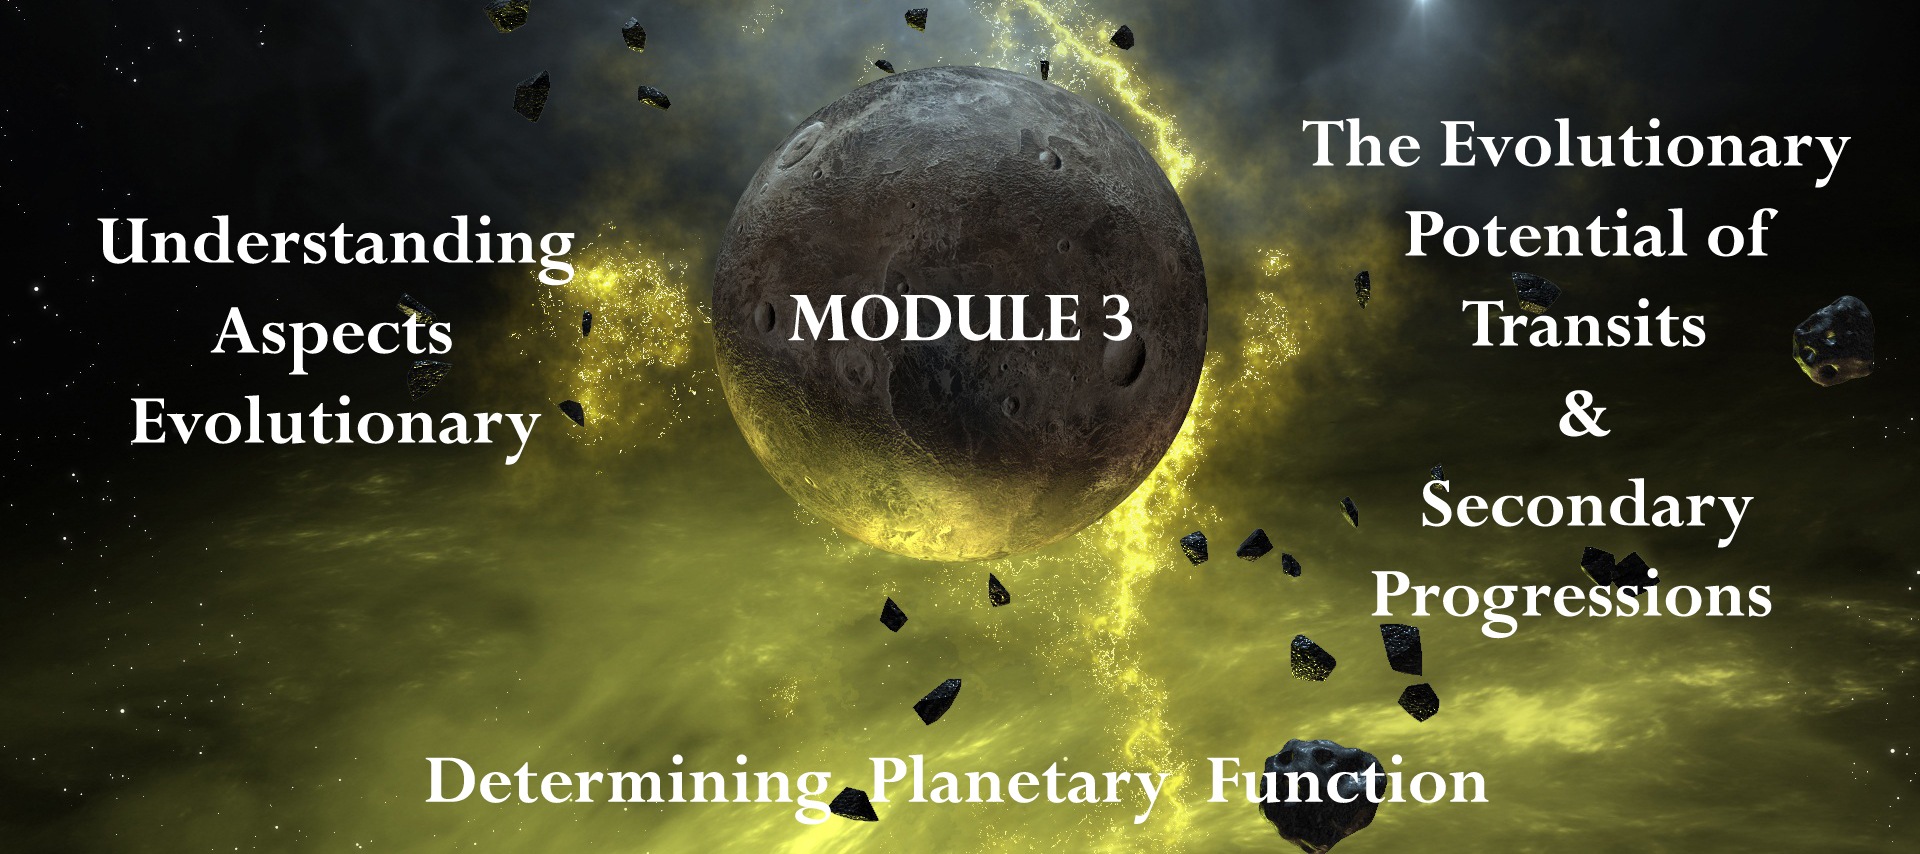 Module 3: Determining Planetary Function, Understanding Aspects Evolutionary,  the Evolutionary Potential of Transits & Progressisons